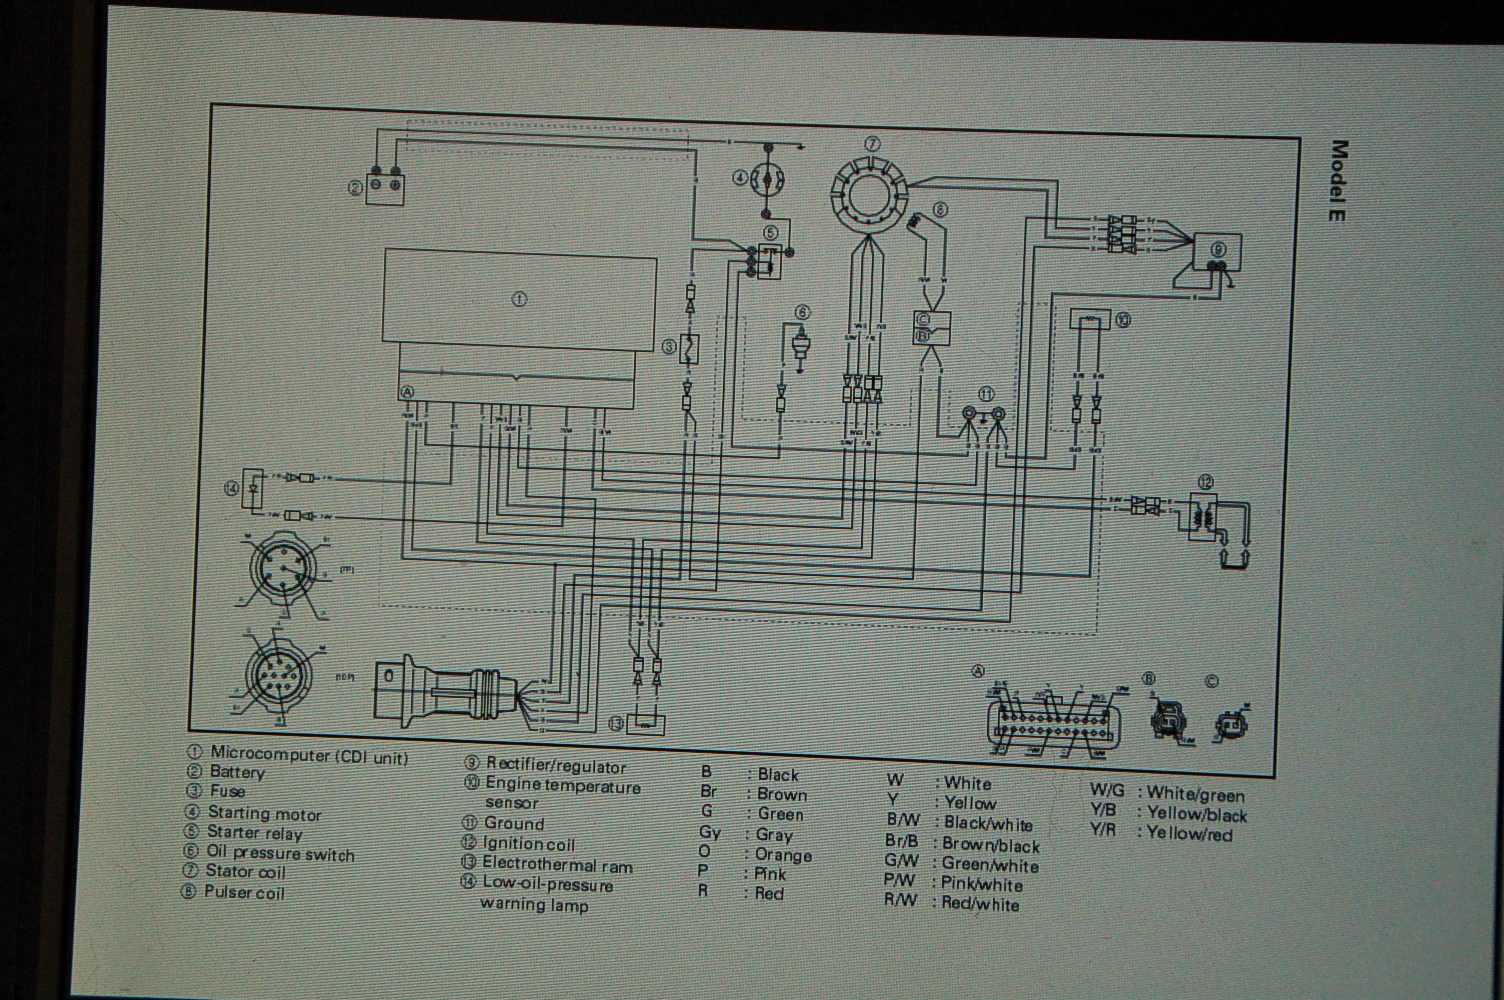 wiring up yamaha 30 boat design net yamaha key switch wiring diagram at bayanpartner.co